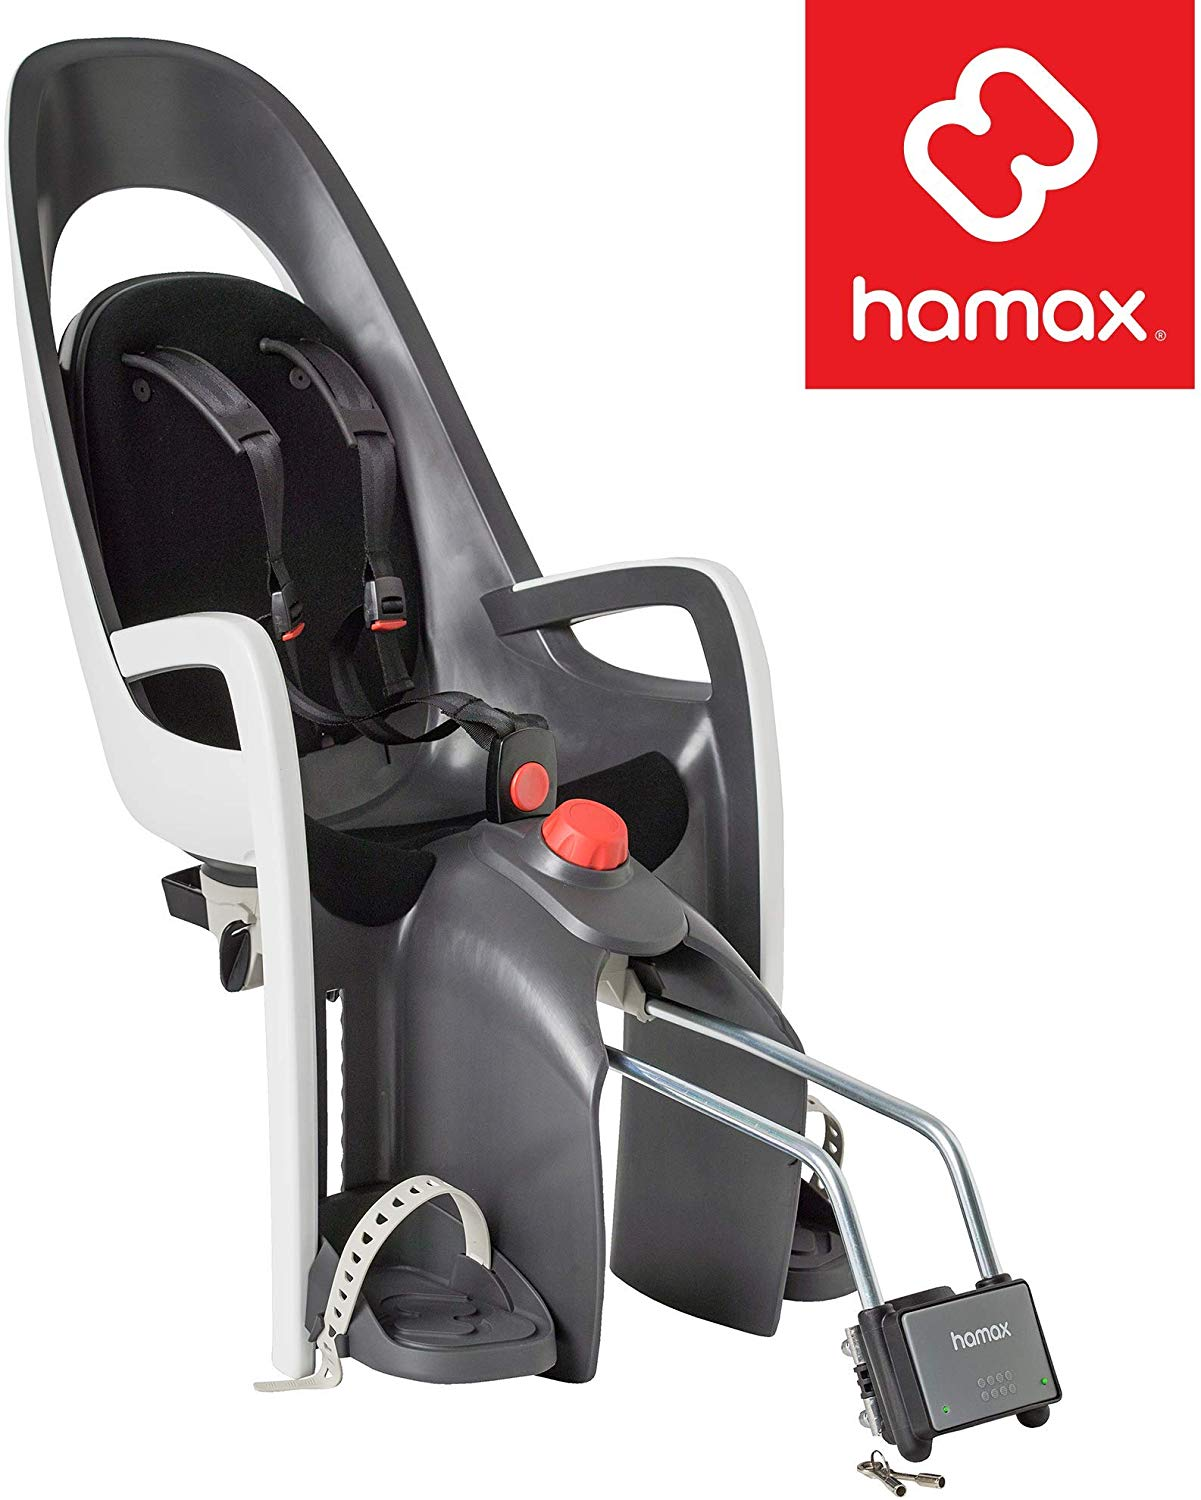 Hamax Caress Child Bike Seat, Ultra-Shock Absorbing Frame or Rack Rear Mount, Adjustable to Fit Kids (Baby through Toddler) 9 mo - 48.5 lb